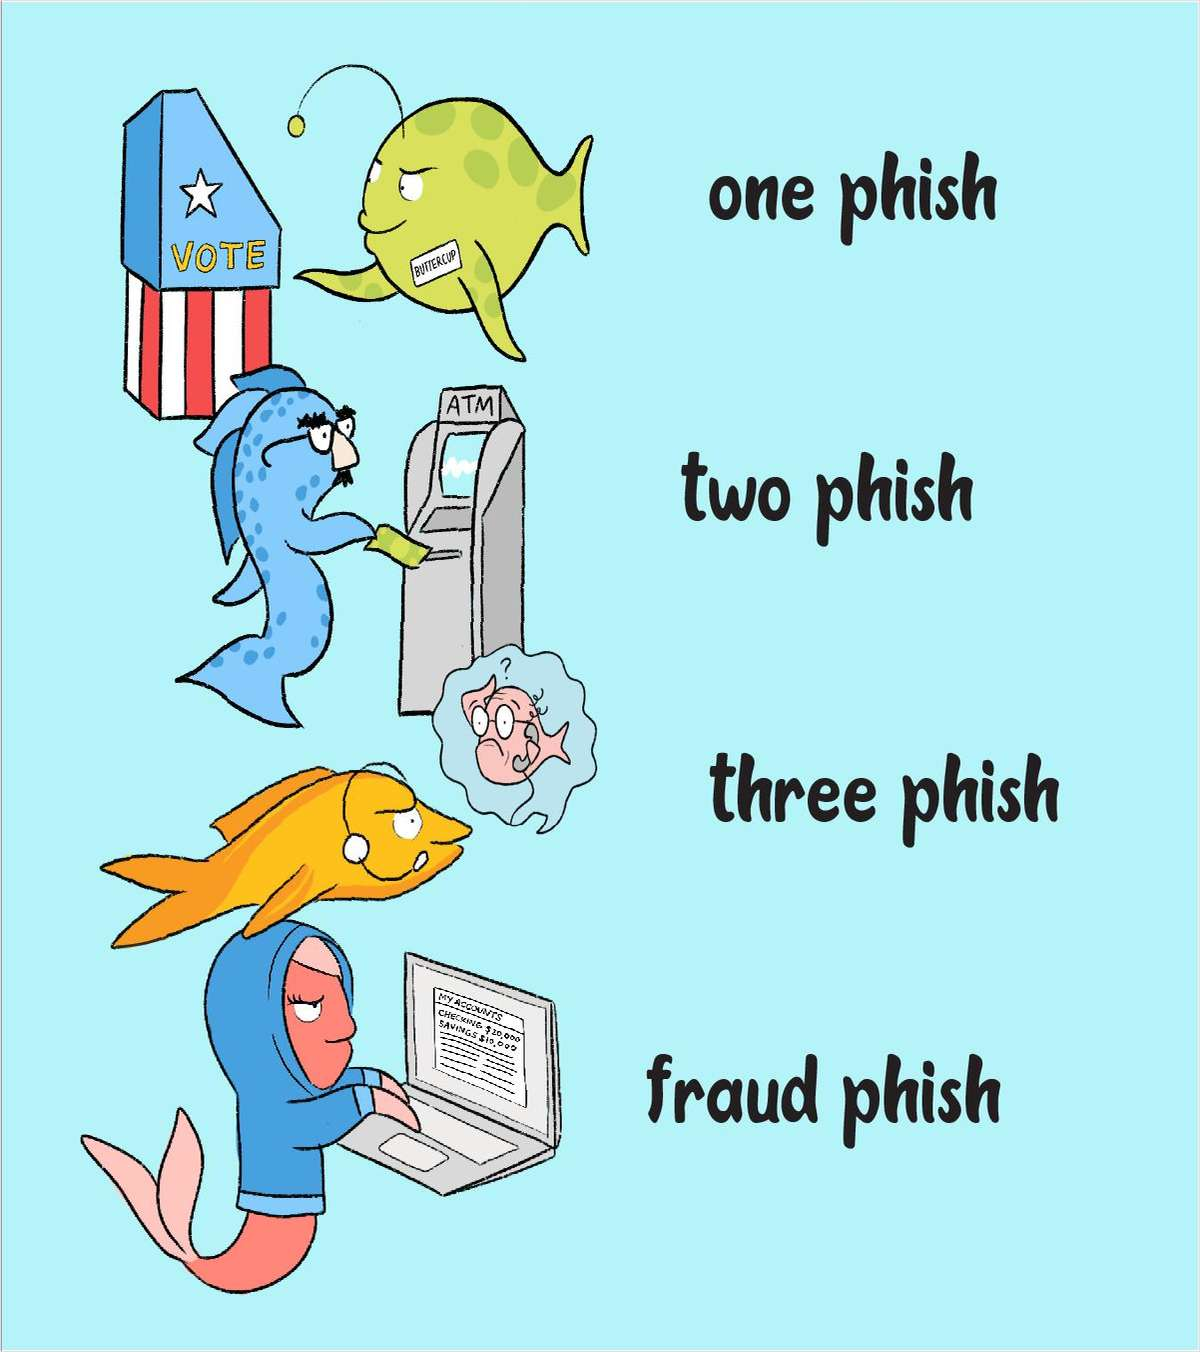 One Phish, Two Phish, Three Phish, Fraud Phish